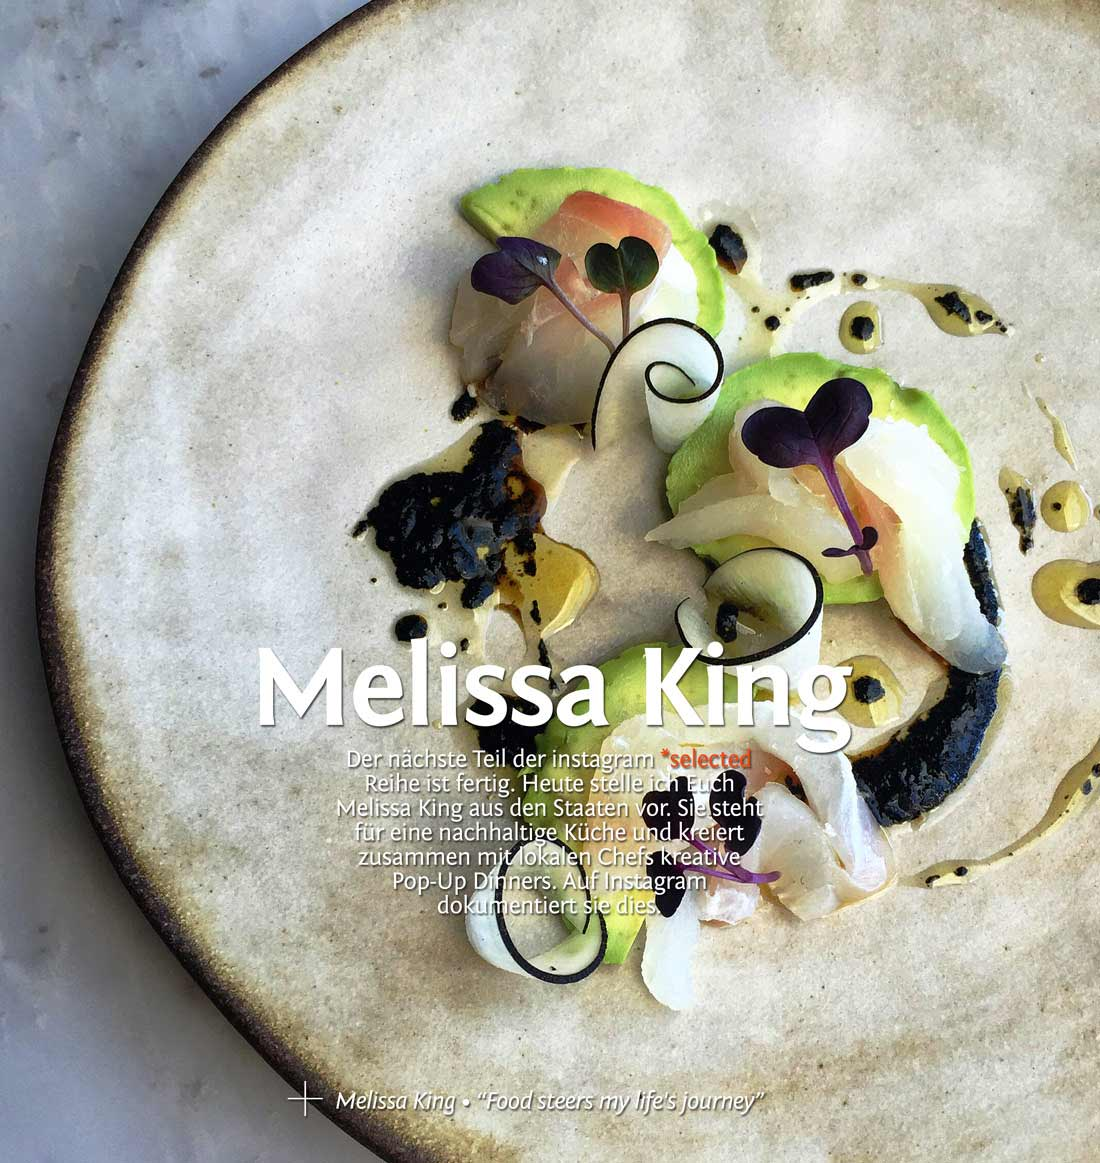 instagram *selected: Melissa King